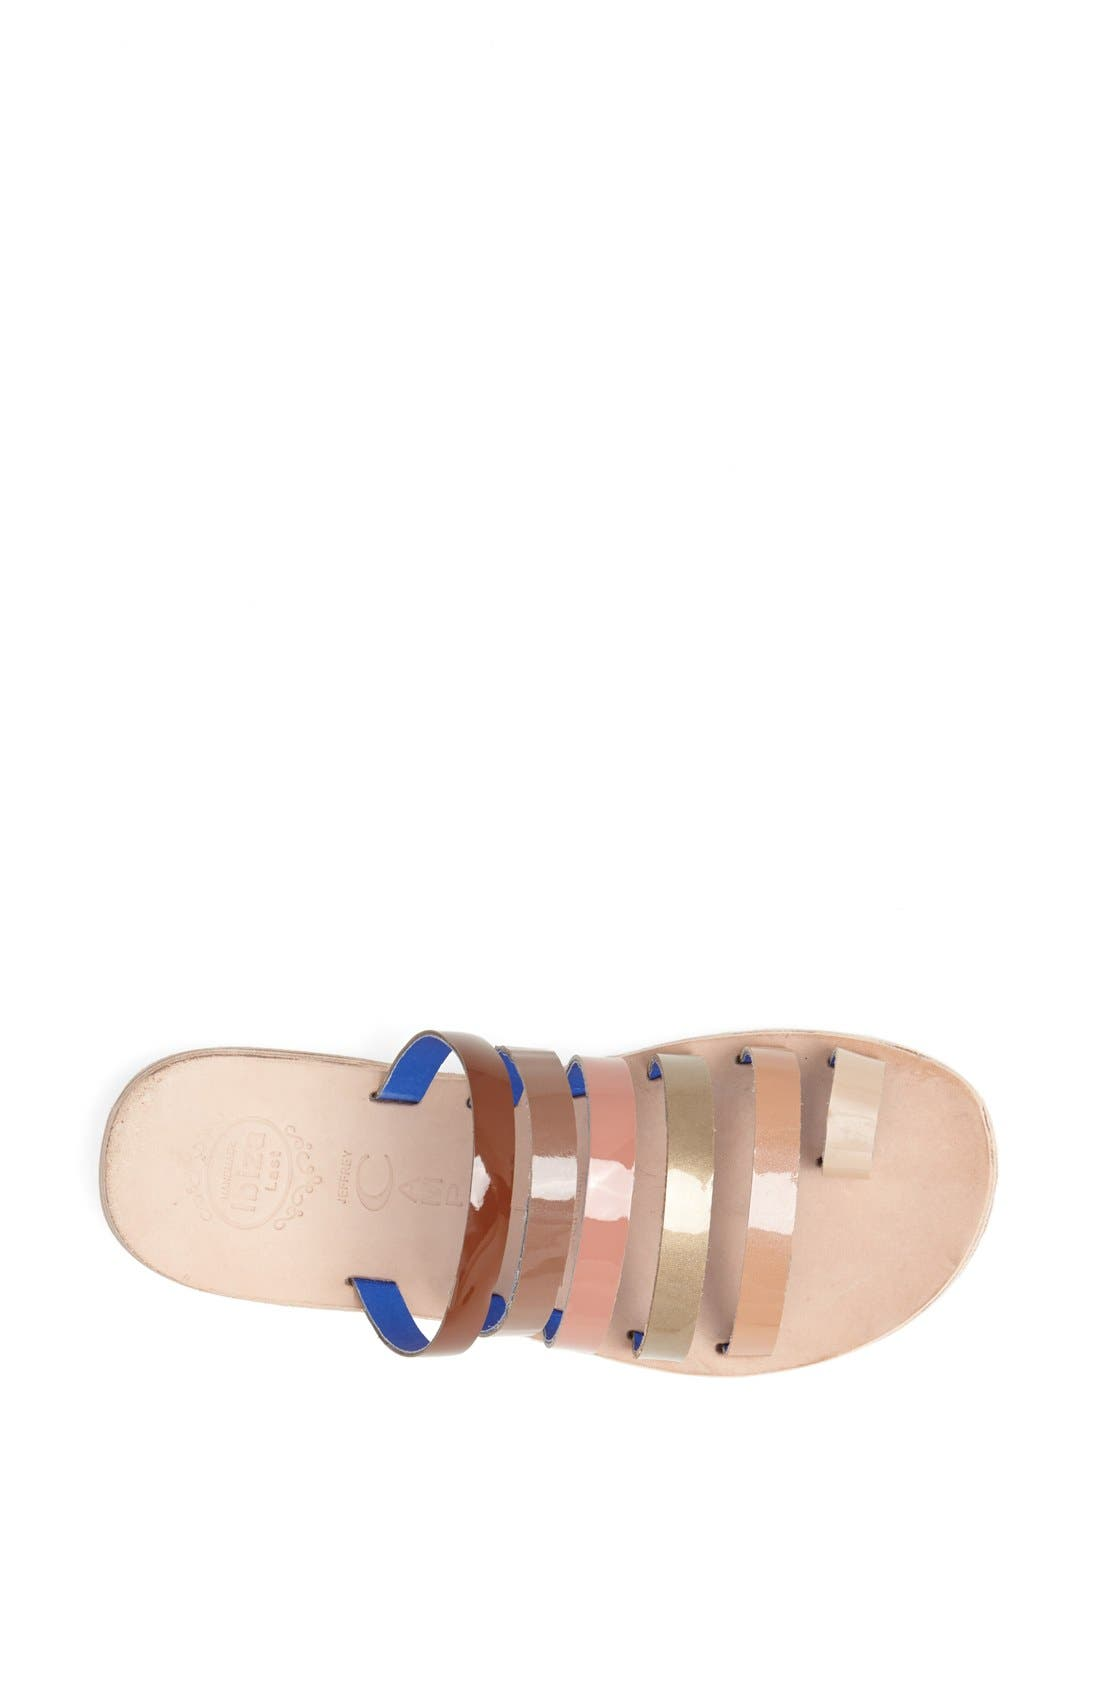 Alternate Image 3  - Jeffrey Campbell 'Murud' Sandal